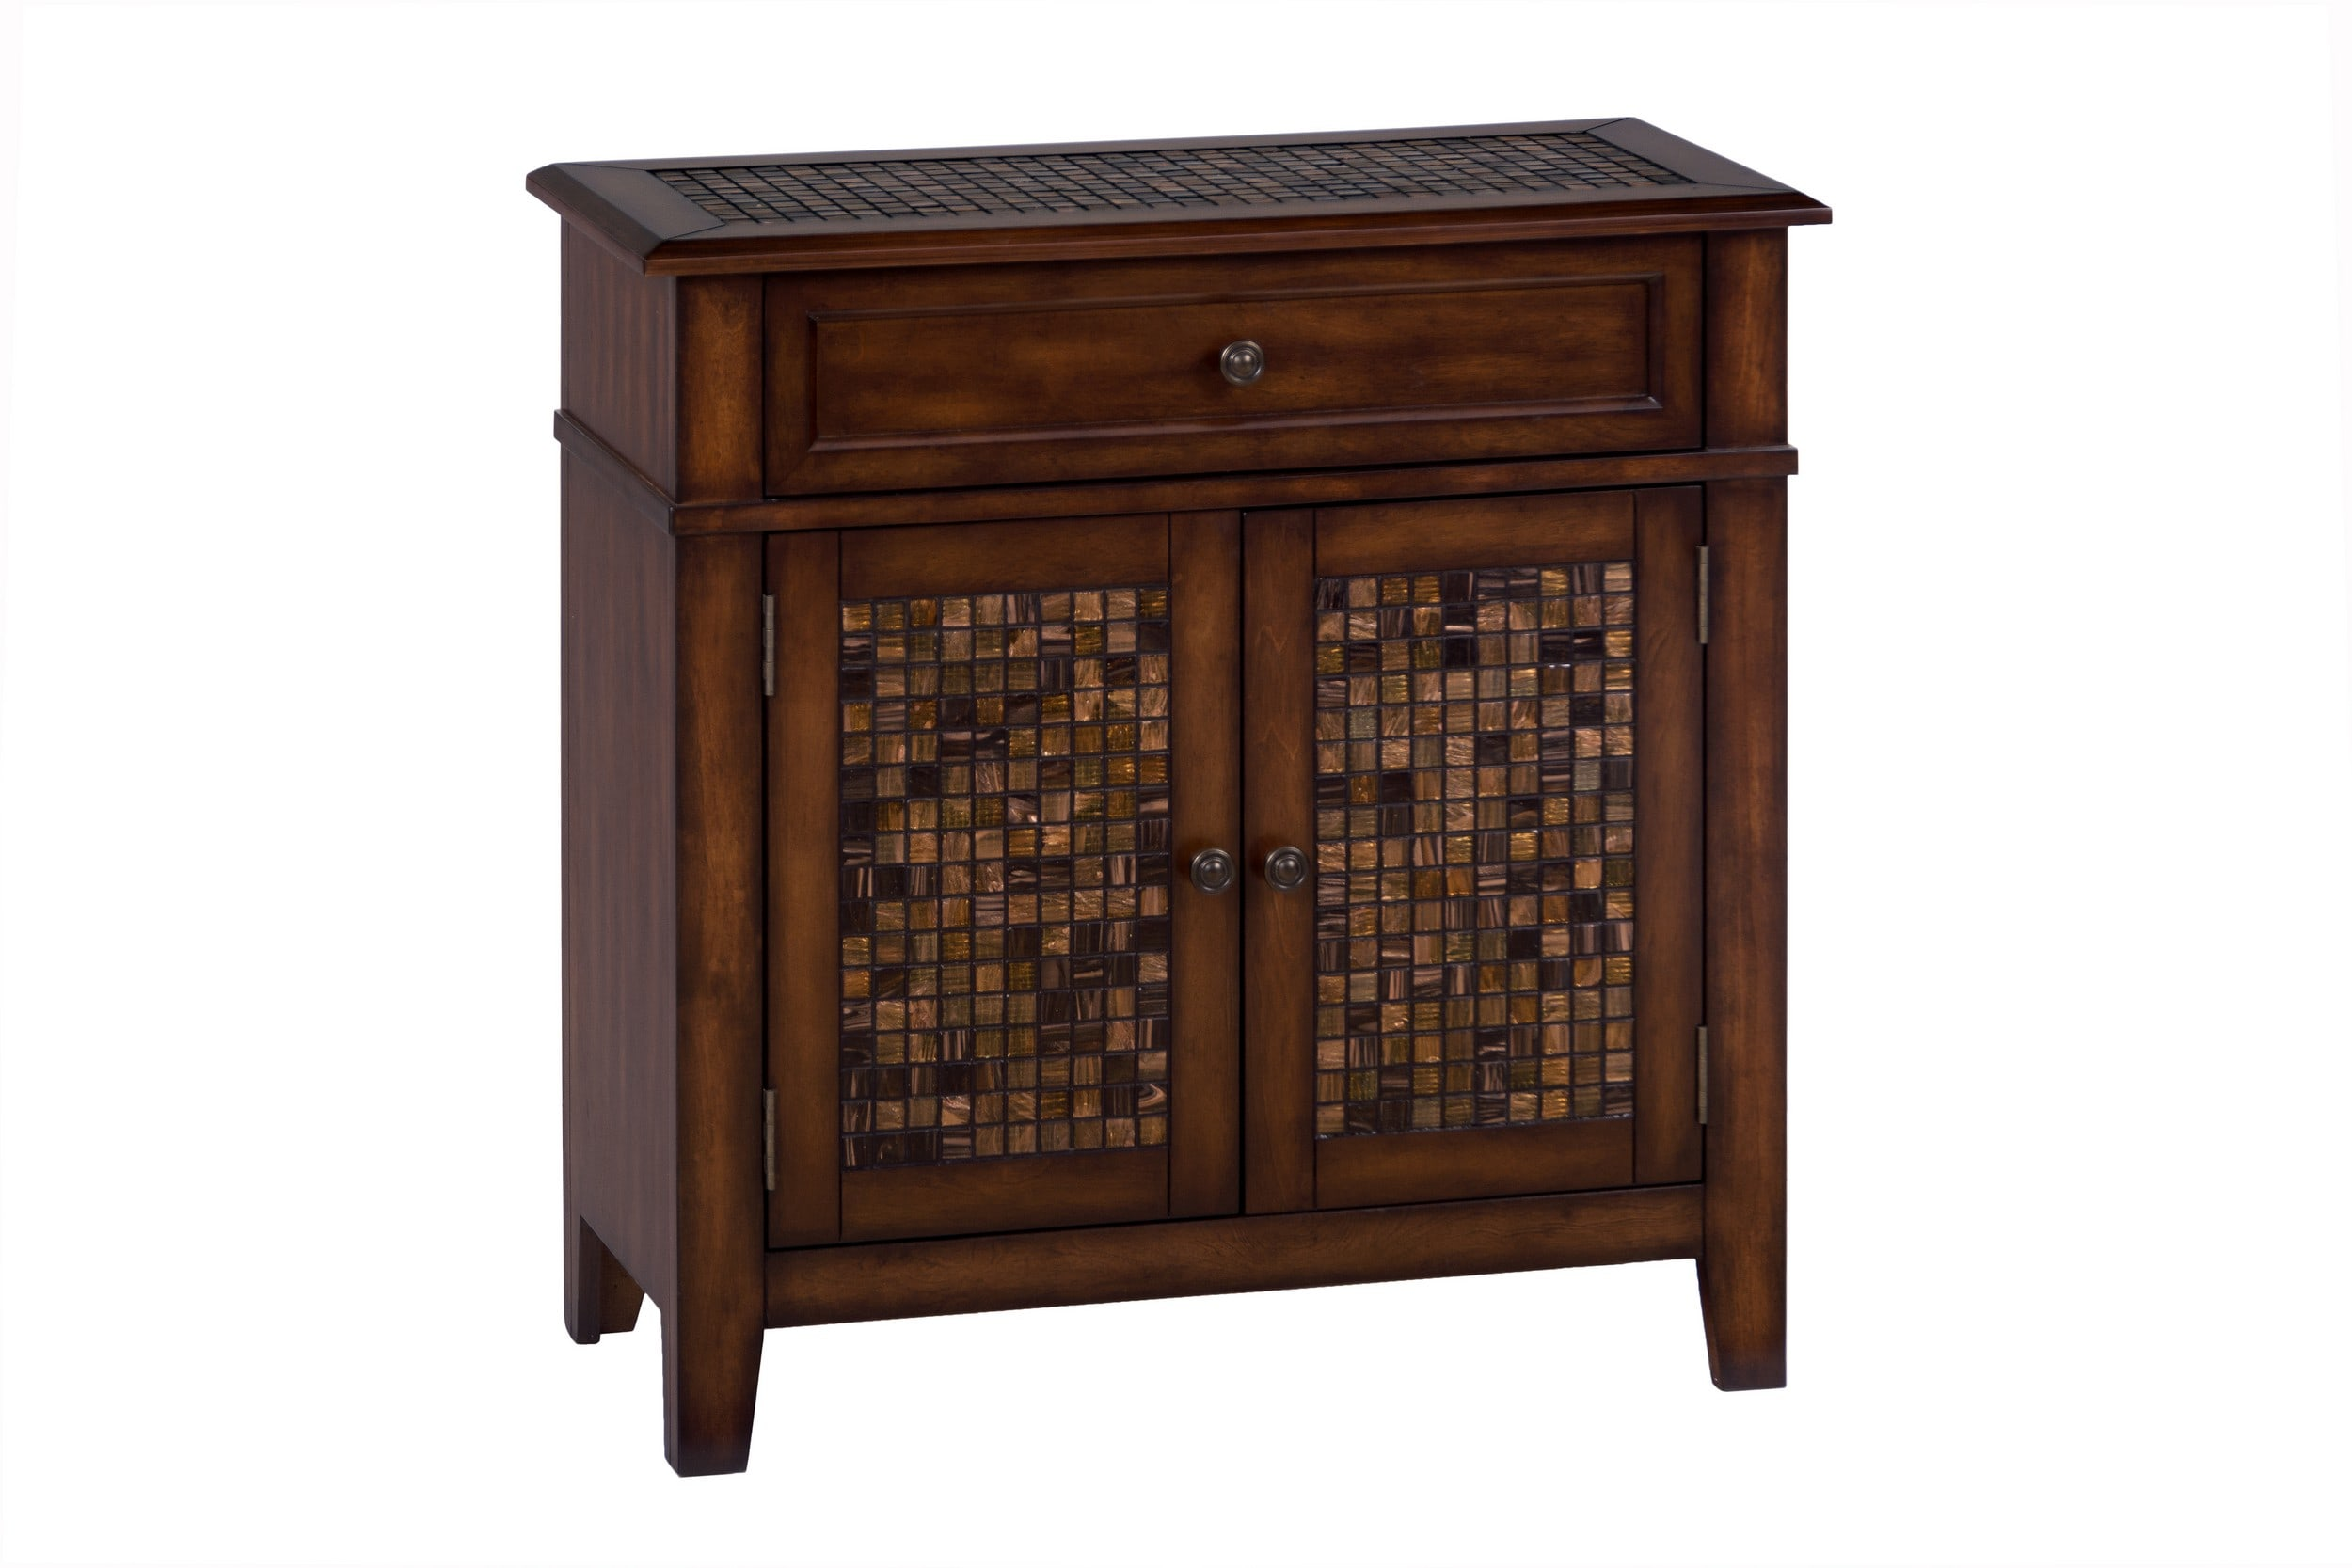 Baroque Brown Accent Cabinet with Mosaic Tile Inlay